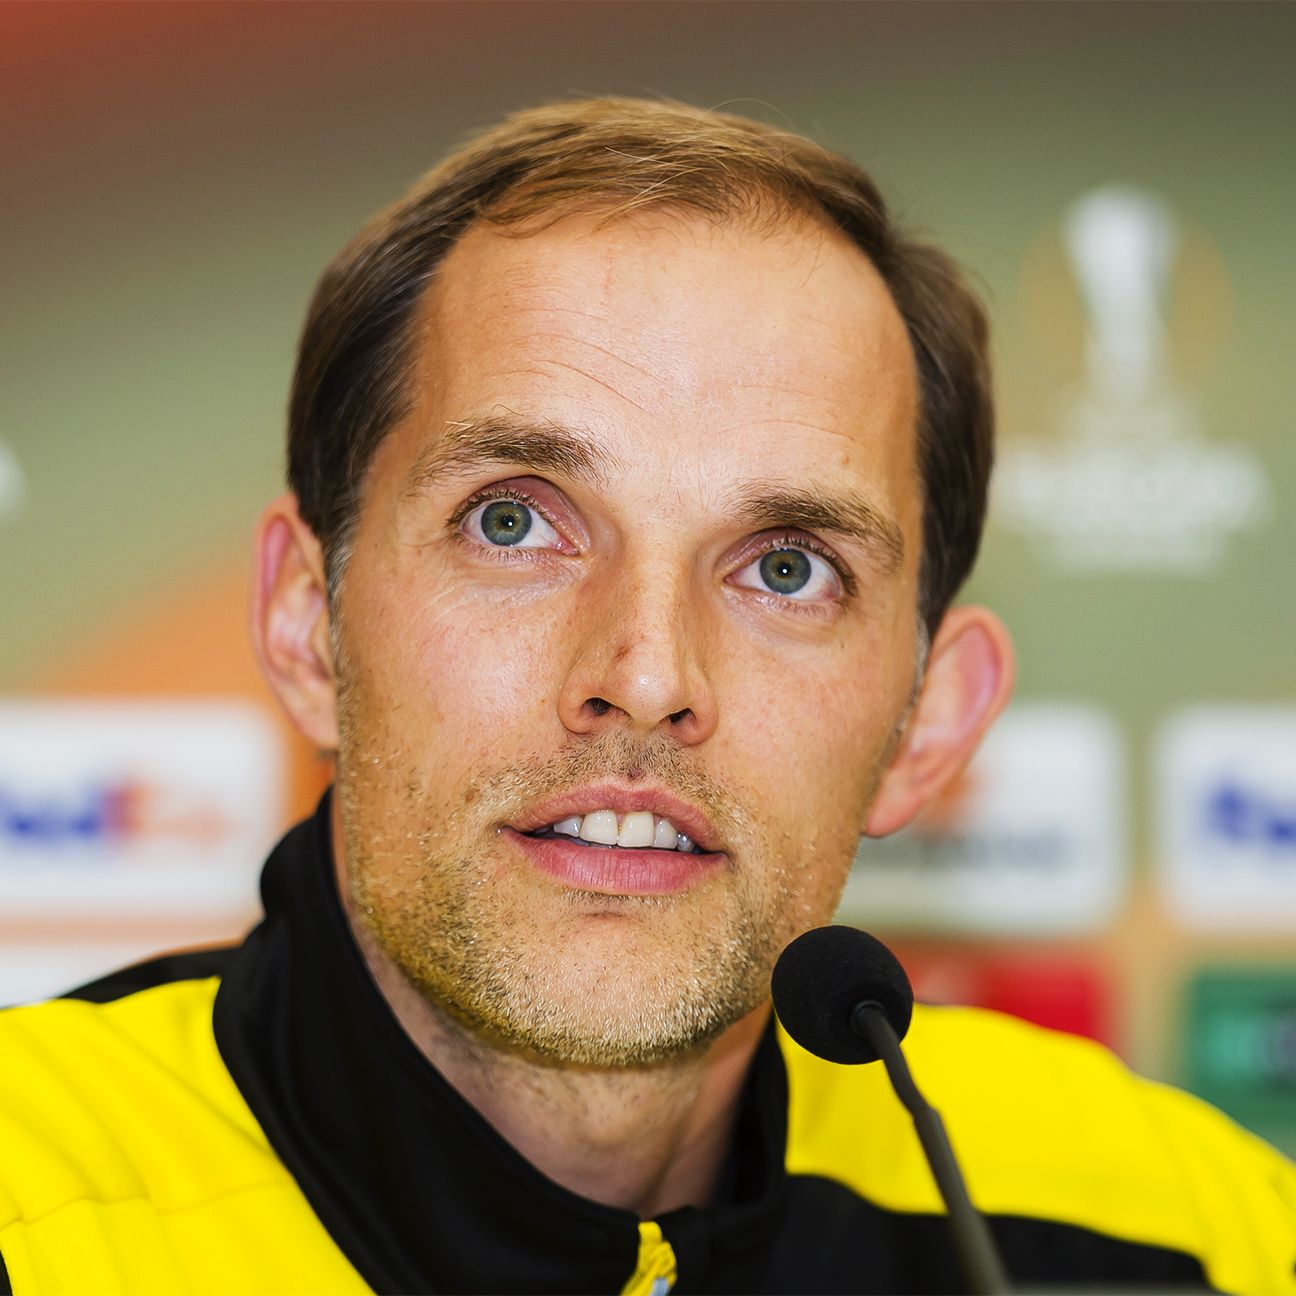 Dortmund fans should expect manager Thomas Tuchel to field a rotated side in the Europa League on Thursday.